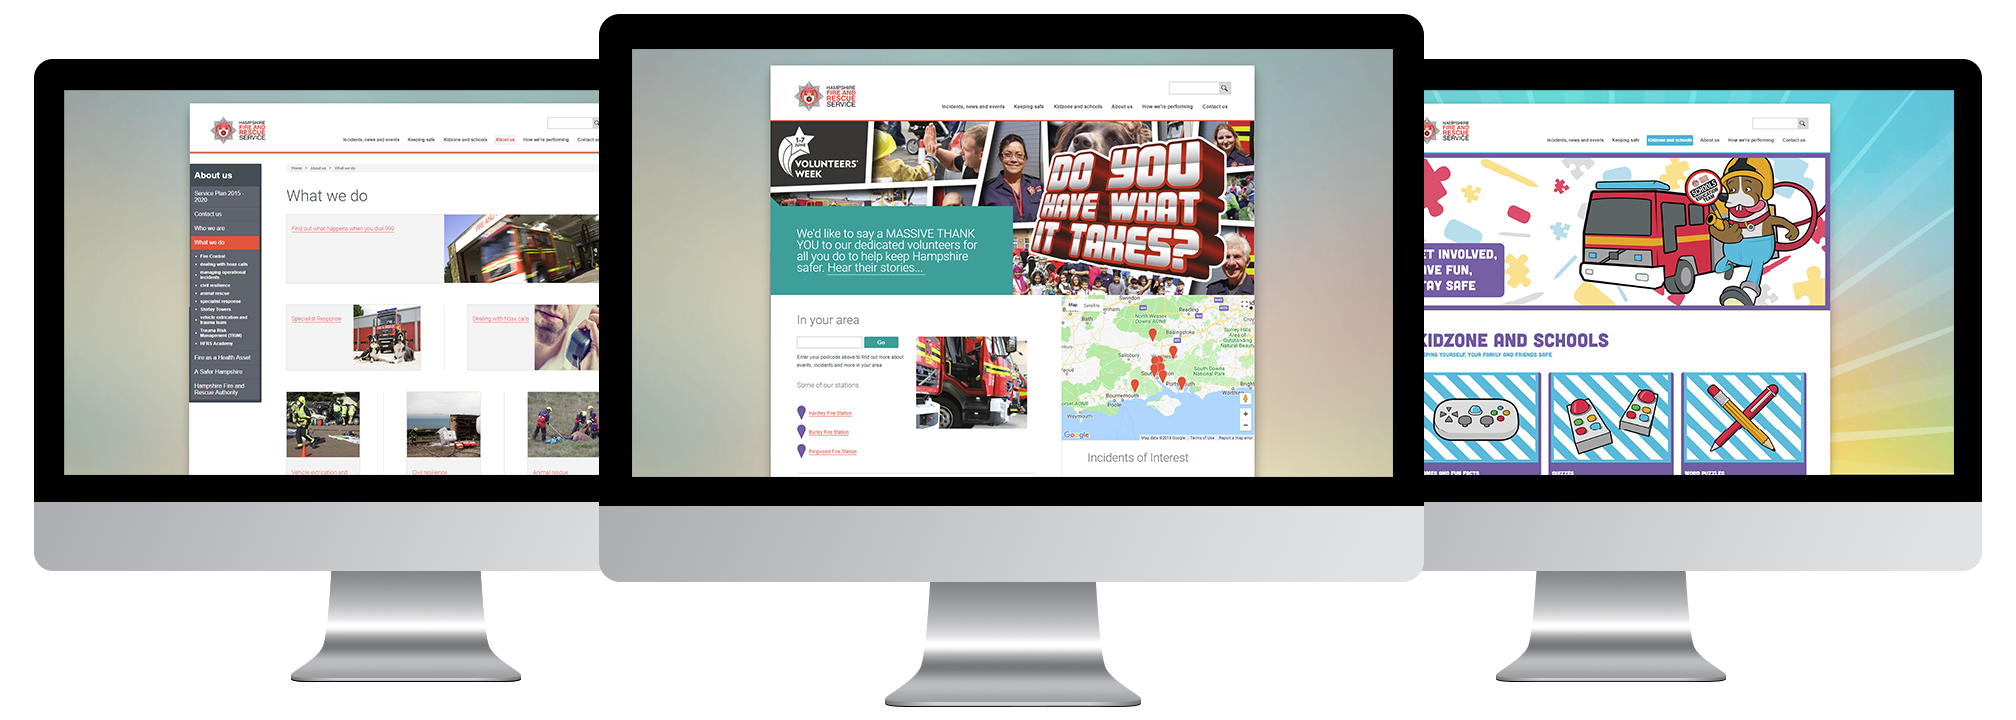 Hampshire Fire and Rescue Service - Moodle Site - LMS Case Study